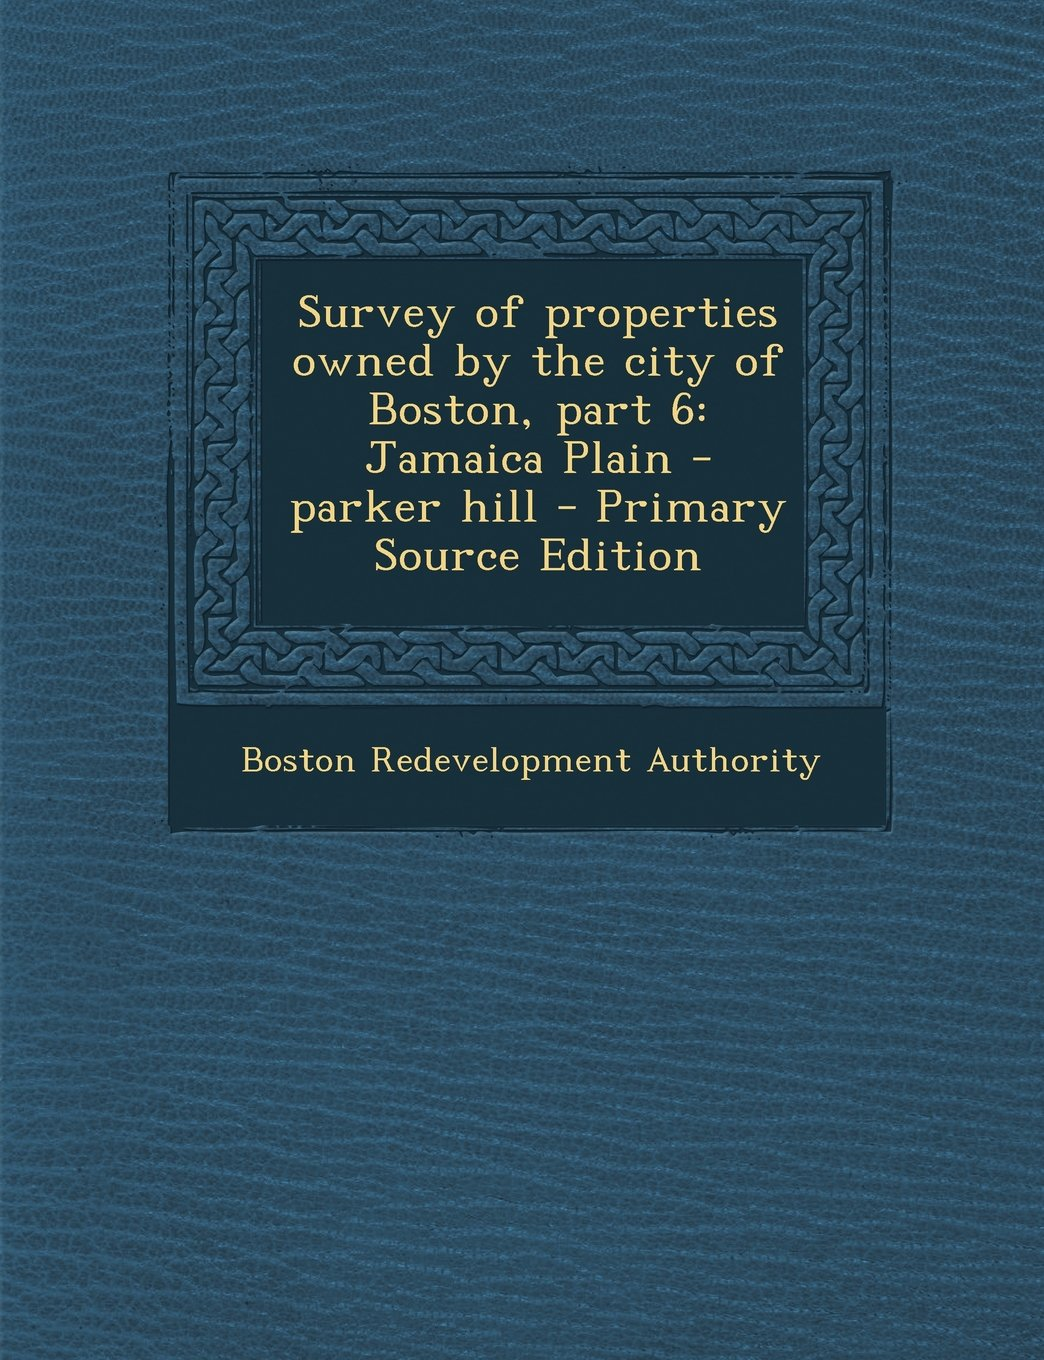 Survey of properties owned by the city of Boston, part 6: Jamaica Plain - parker hill - Primary Source Edition